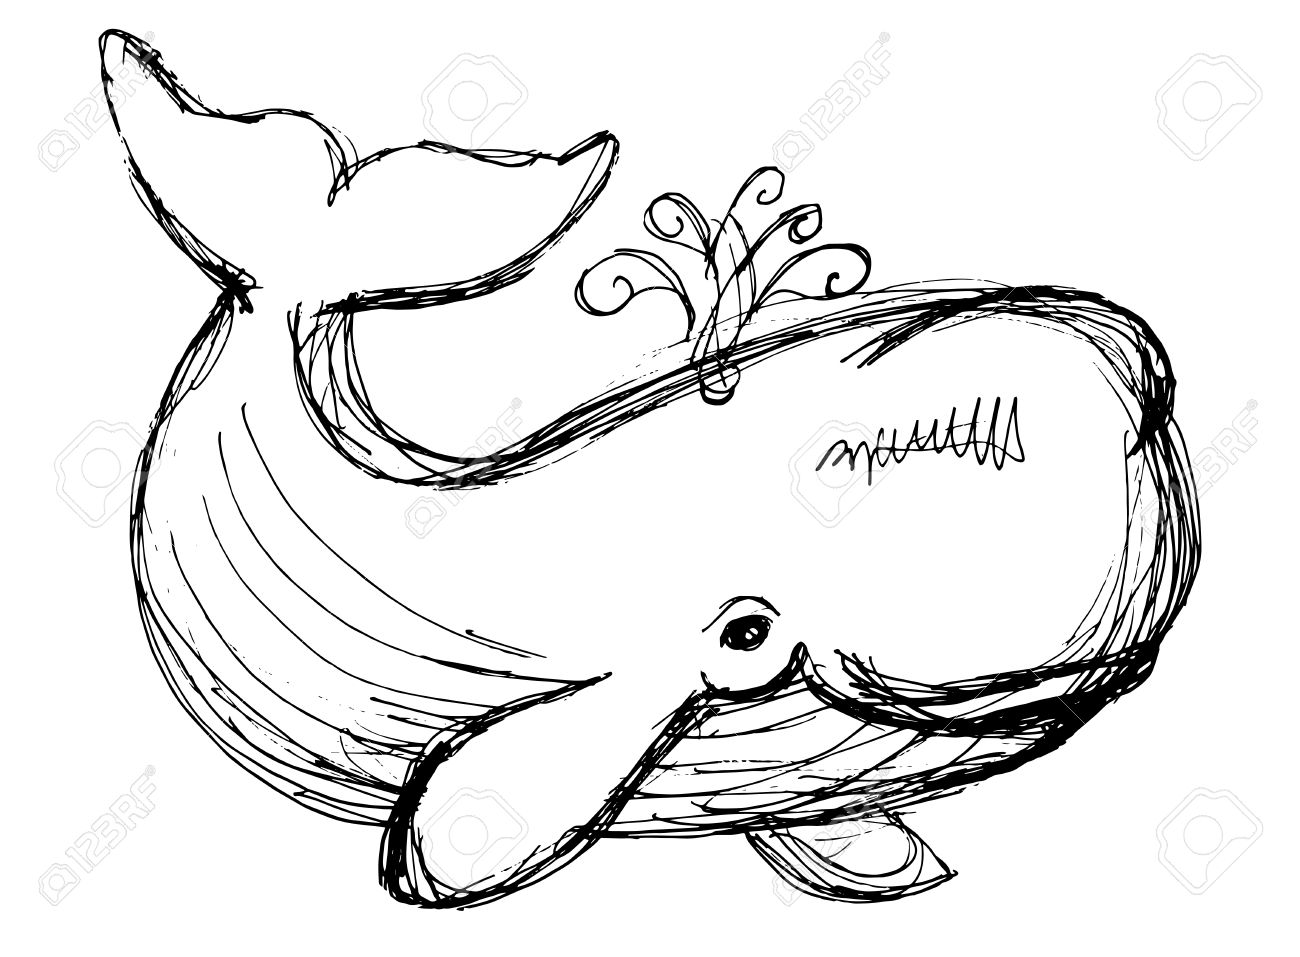 1300x957 The Whale Drawing. Hand Drawn Illustration With Whale. Animal